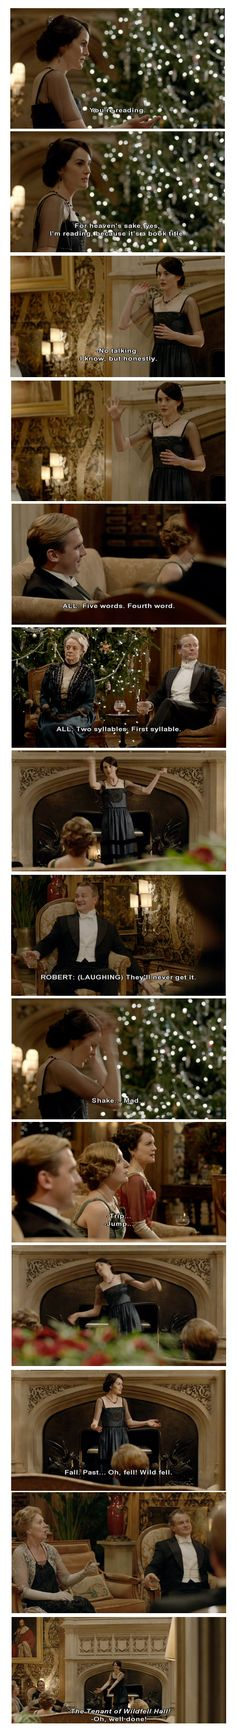 Book title charades in the Downton Abbey Christmas Special - The Tenant of Wildfell Hall, by Anne Bronte